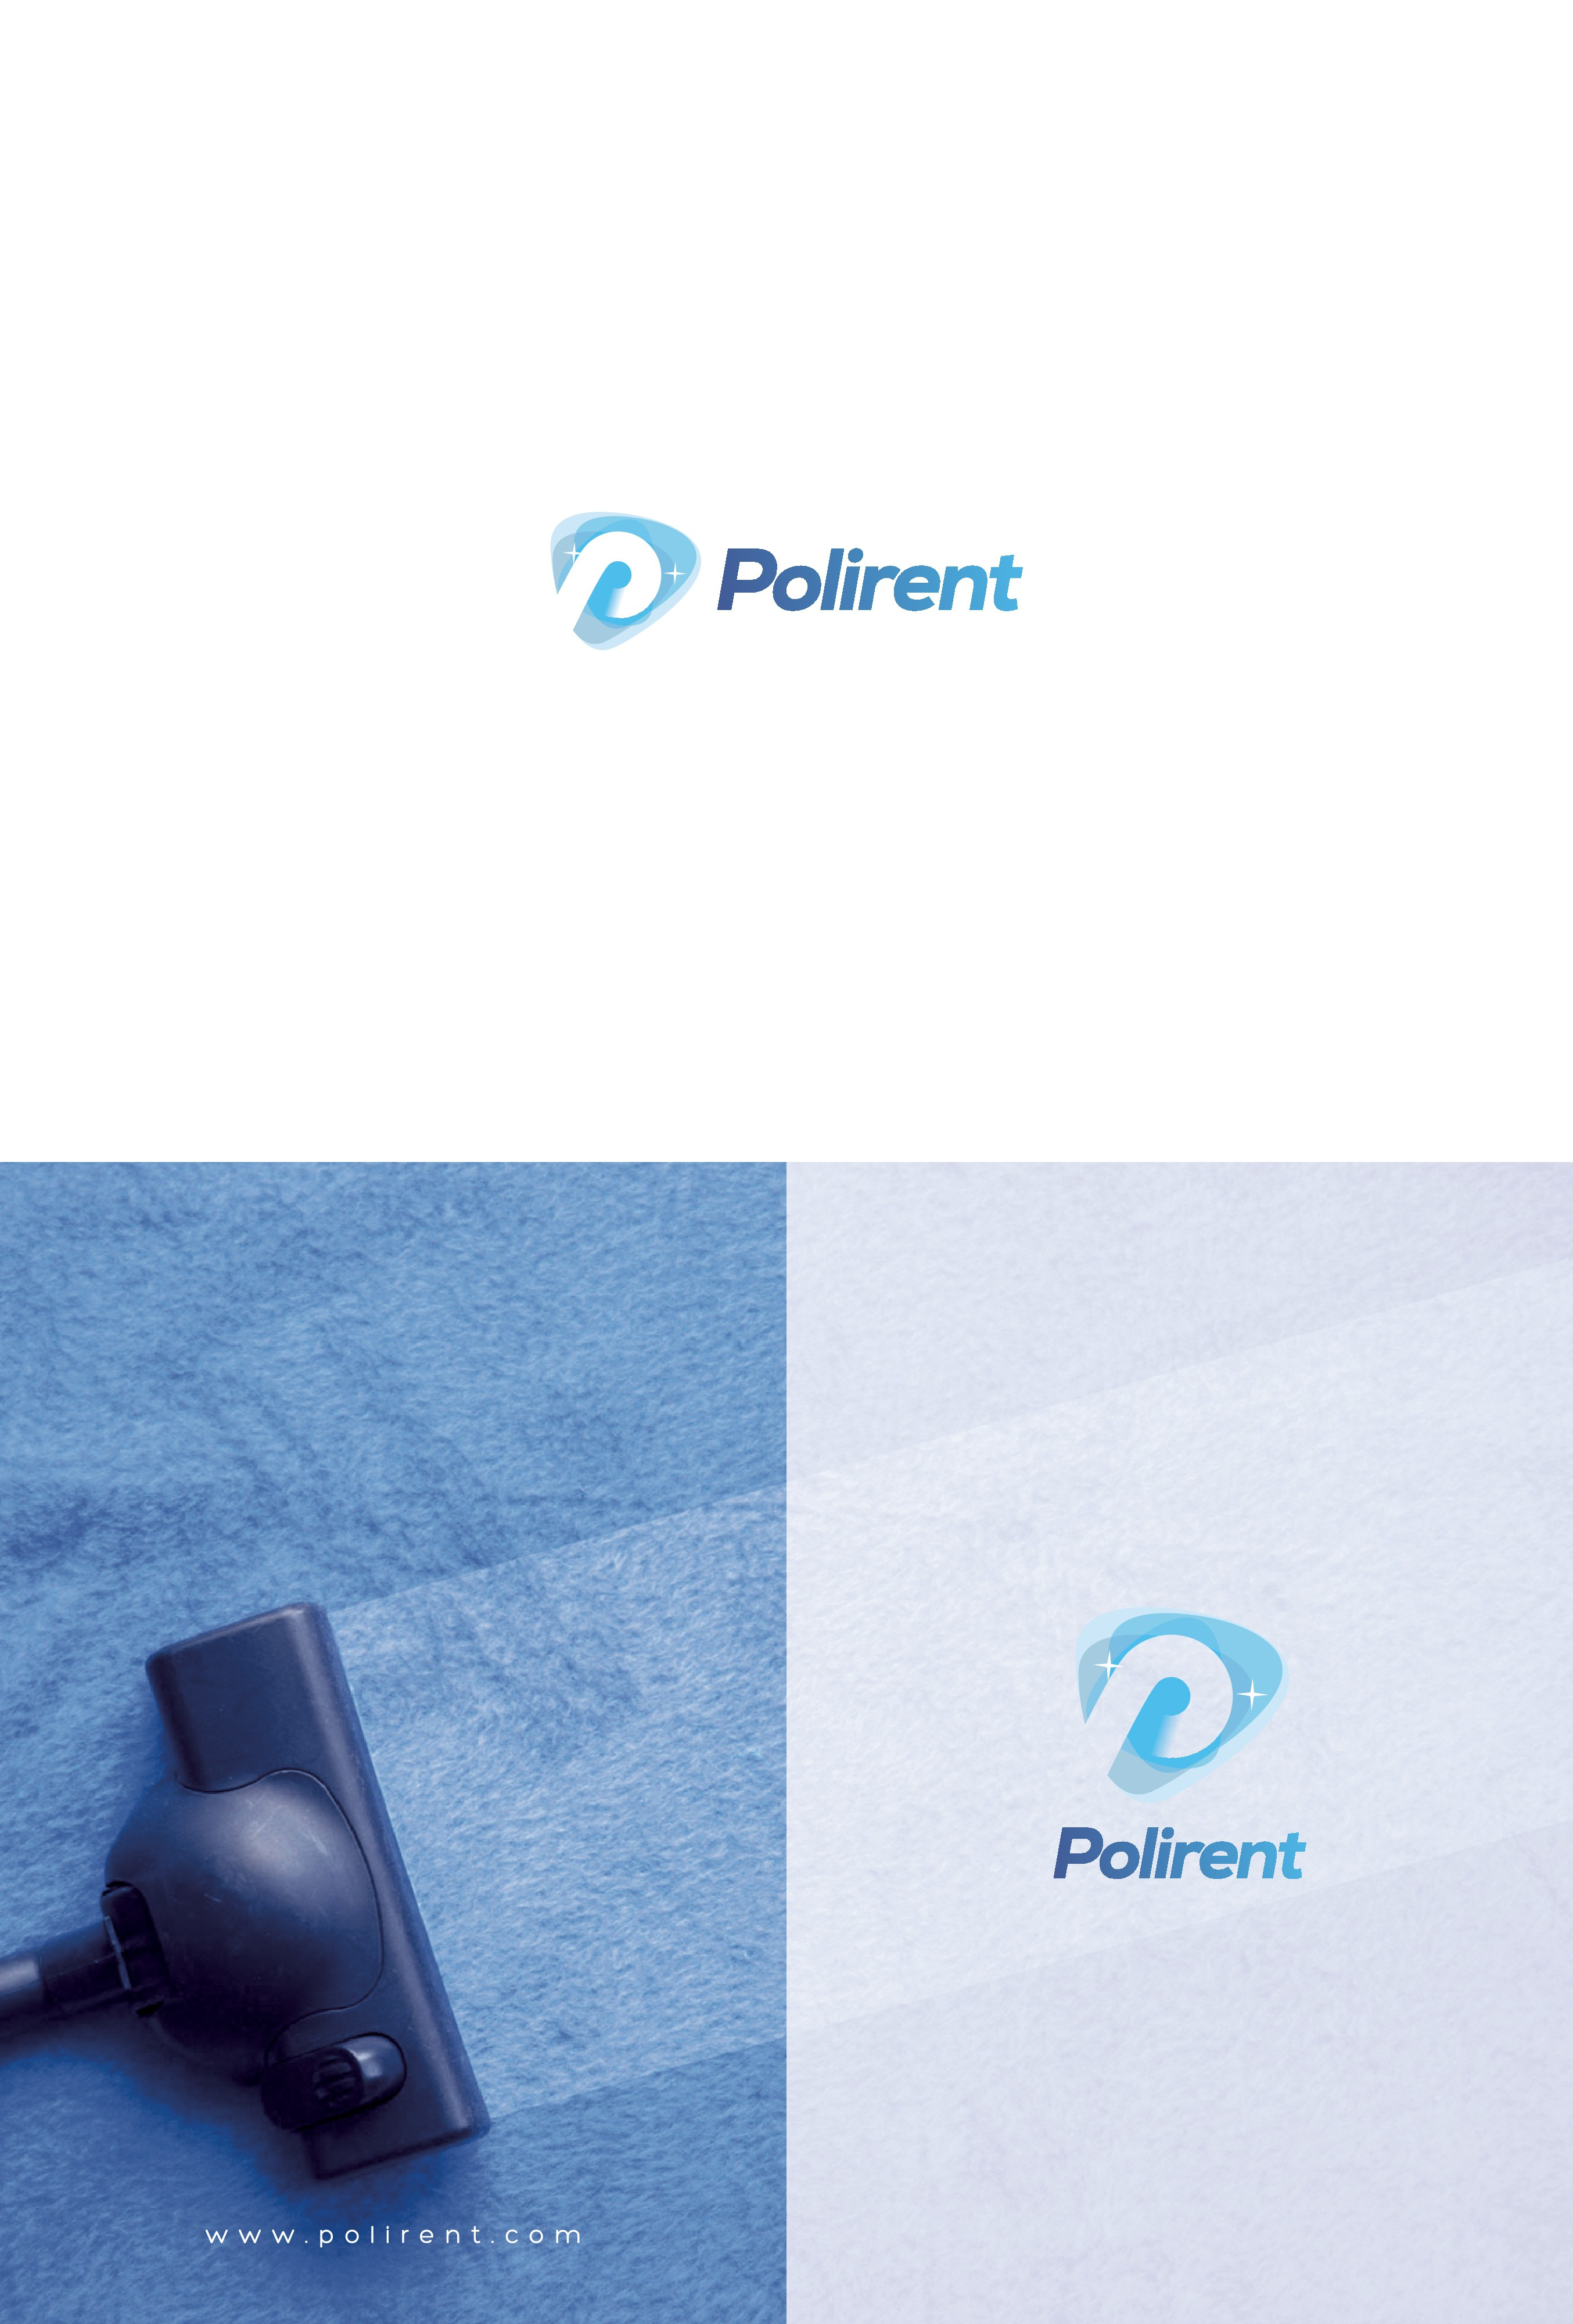 Logo for a cleaning company